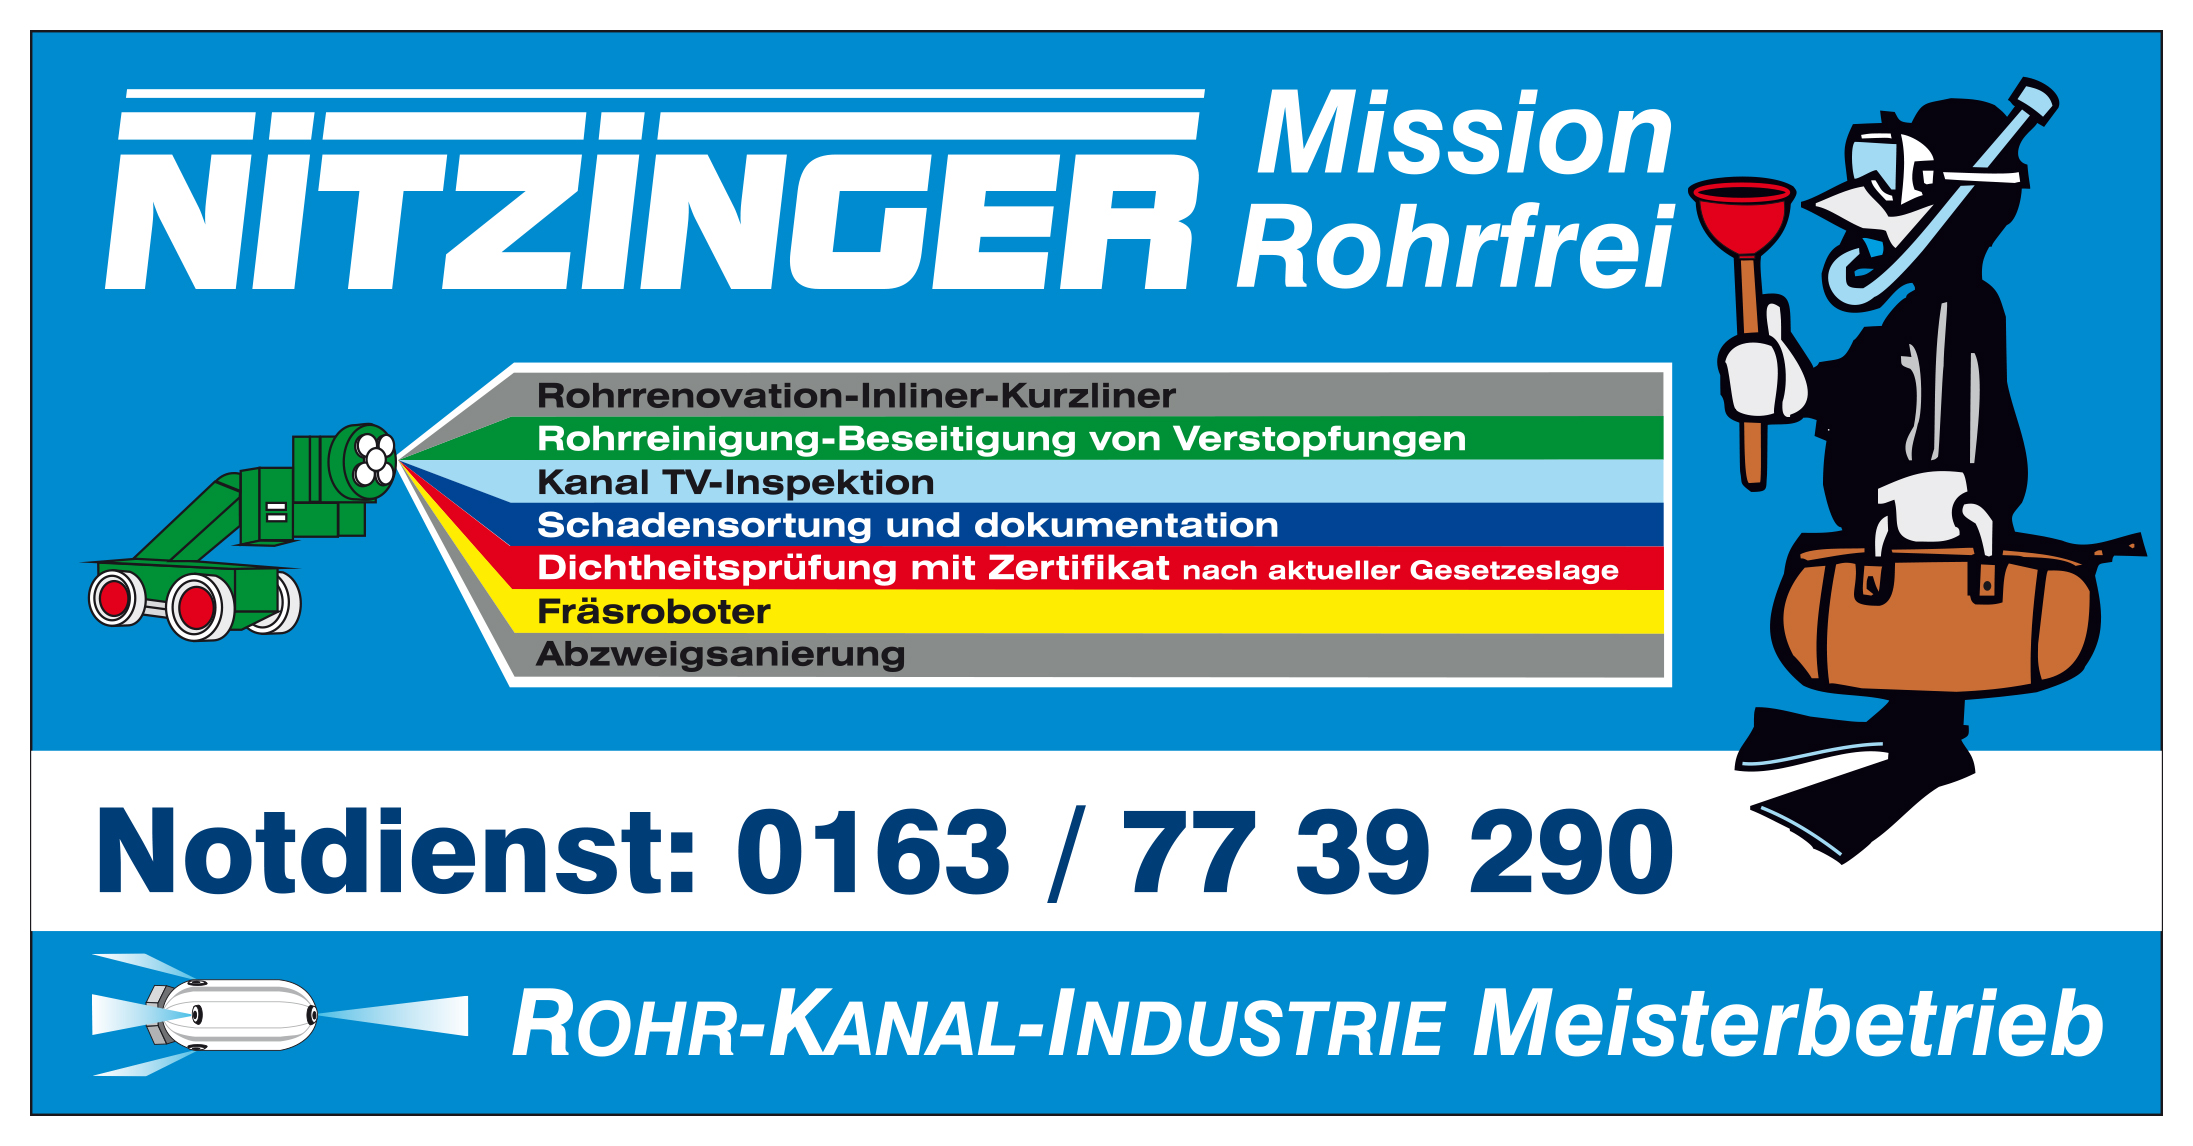 Mission Rohrfrei - Andreas Nitzinger